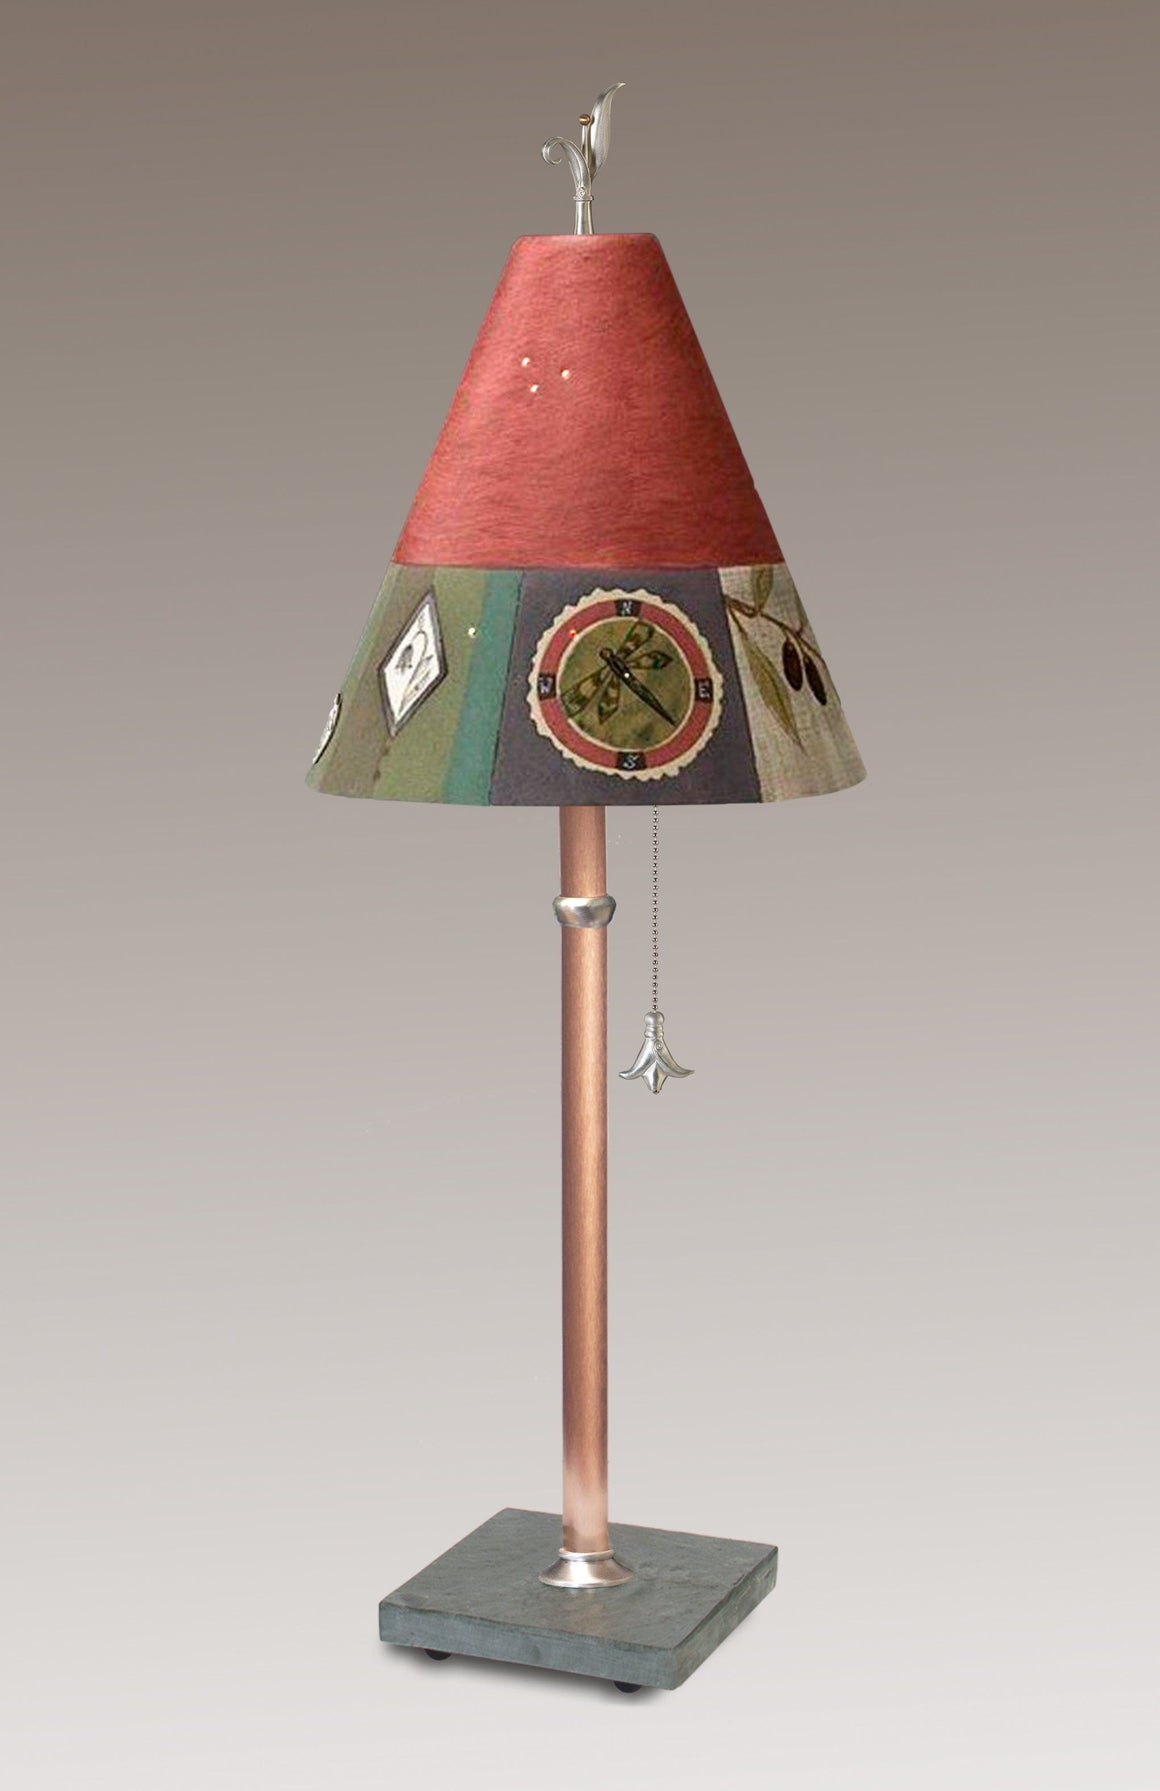 Copper Table Lamp with Small Conical Ceramic Shade in Lockets Rose